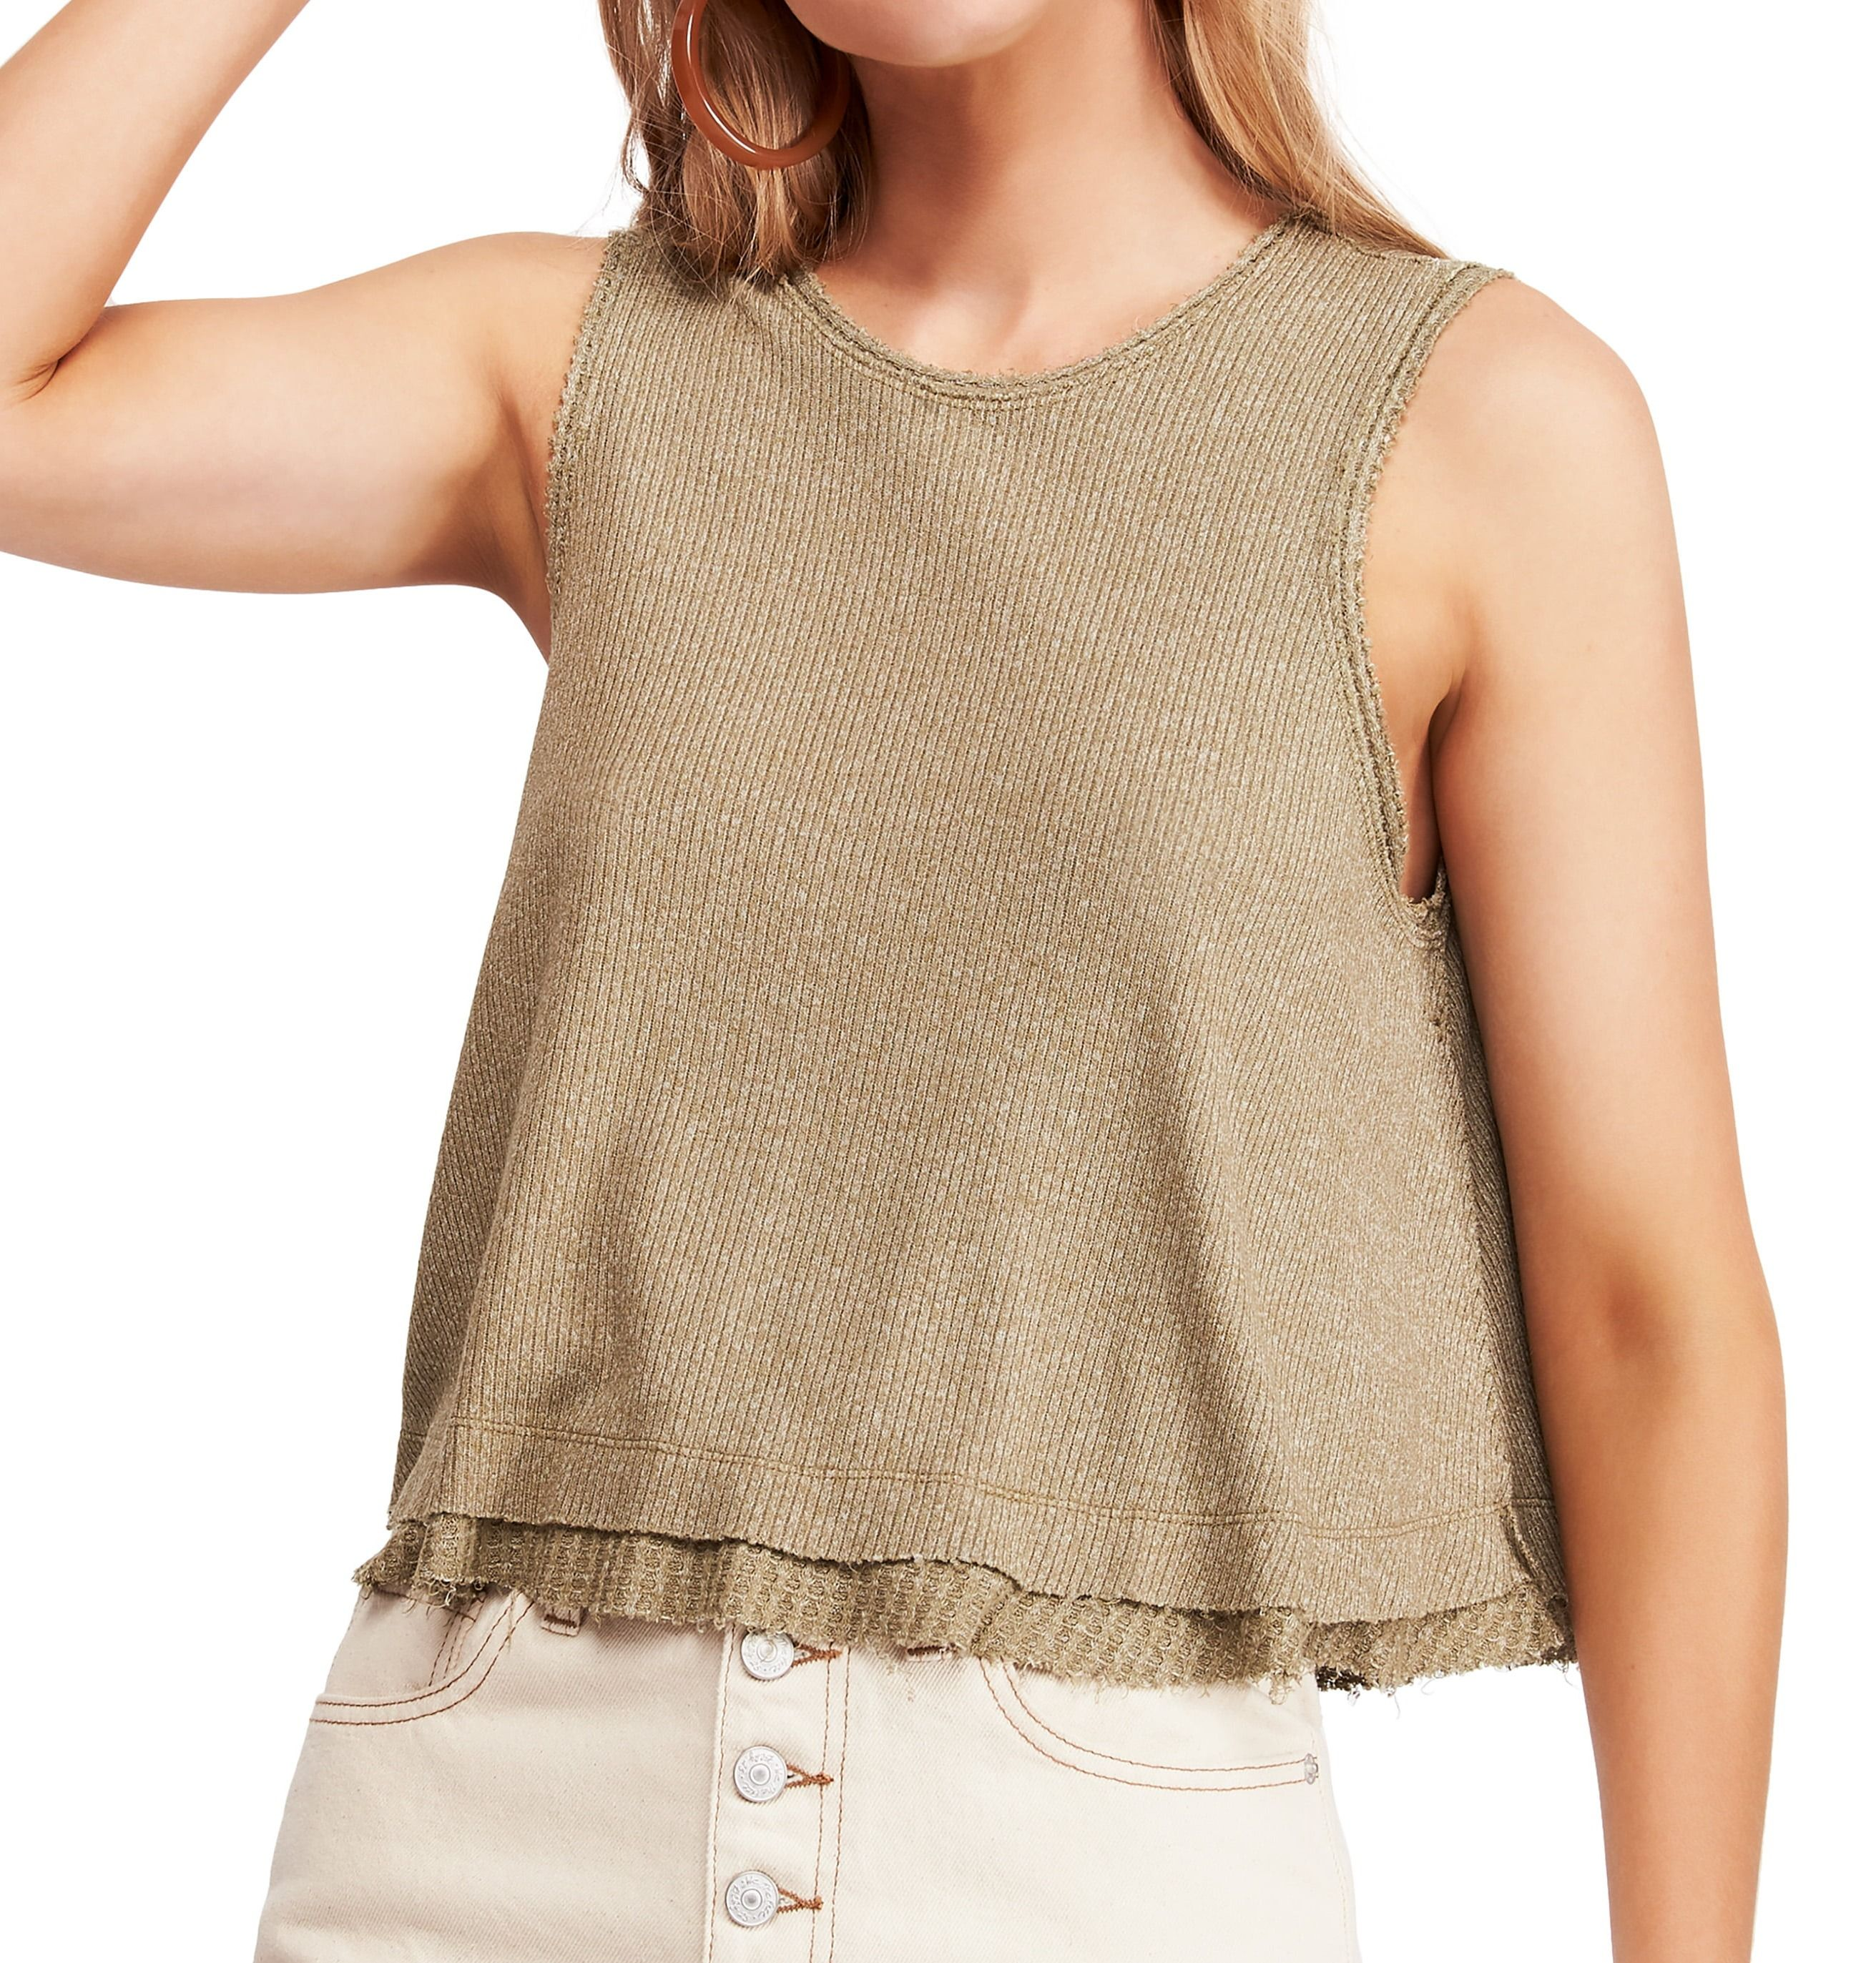 Free People Women's Top Olive Green Size Large L Knit Tank Layered Look